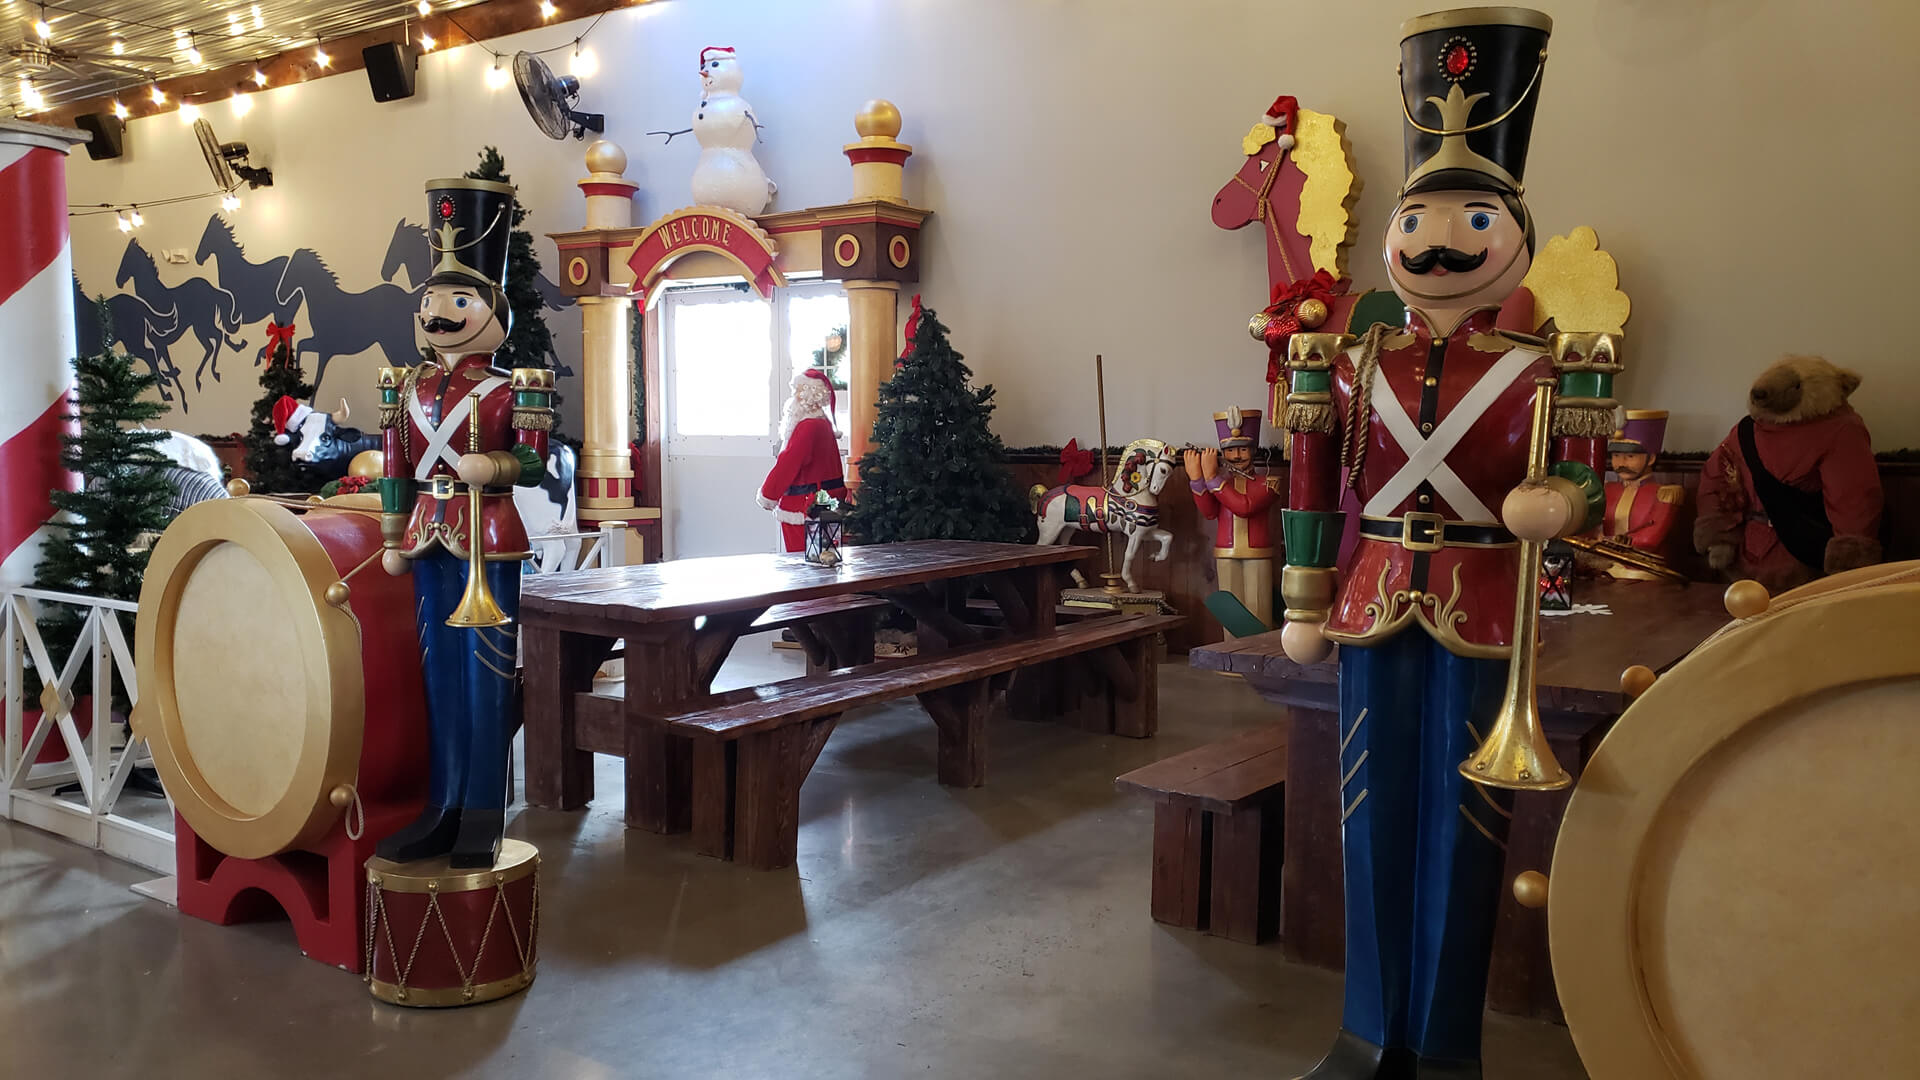 Indoor seating surrounded by large-scale Christmas decorations including life-size toy soldiers, Santa, and candy cane pillars